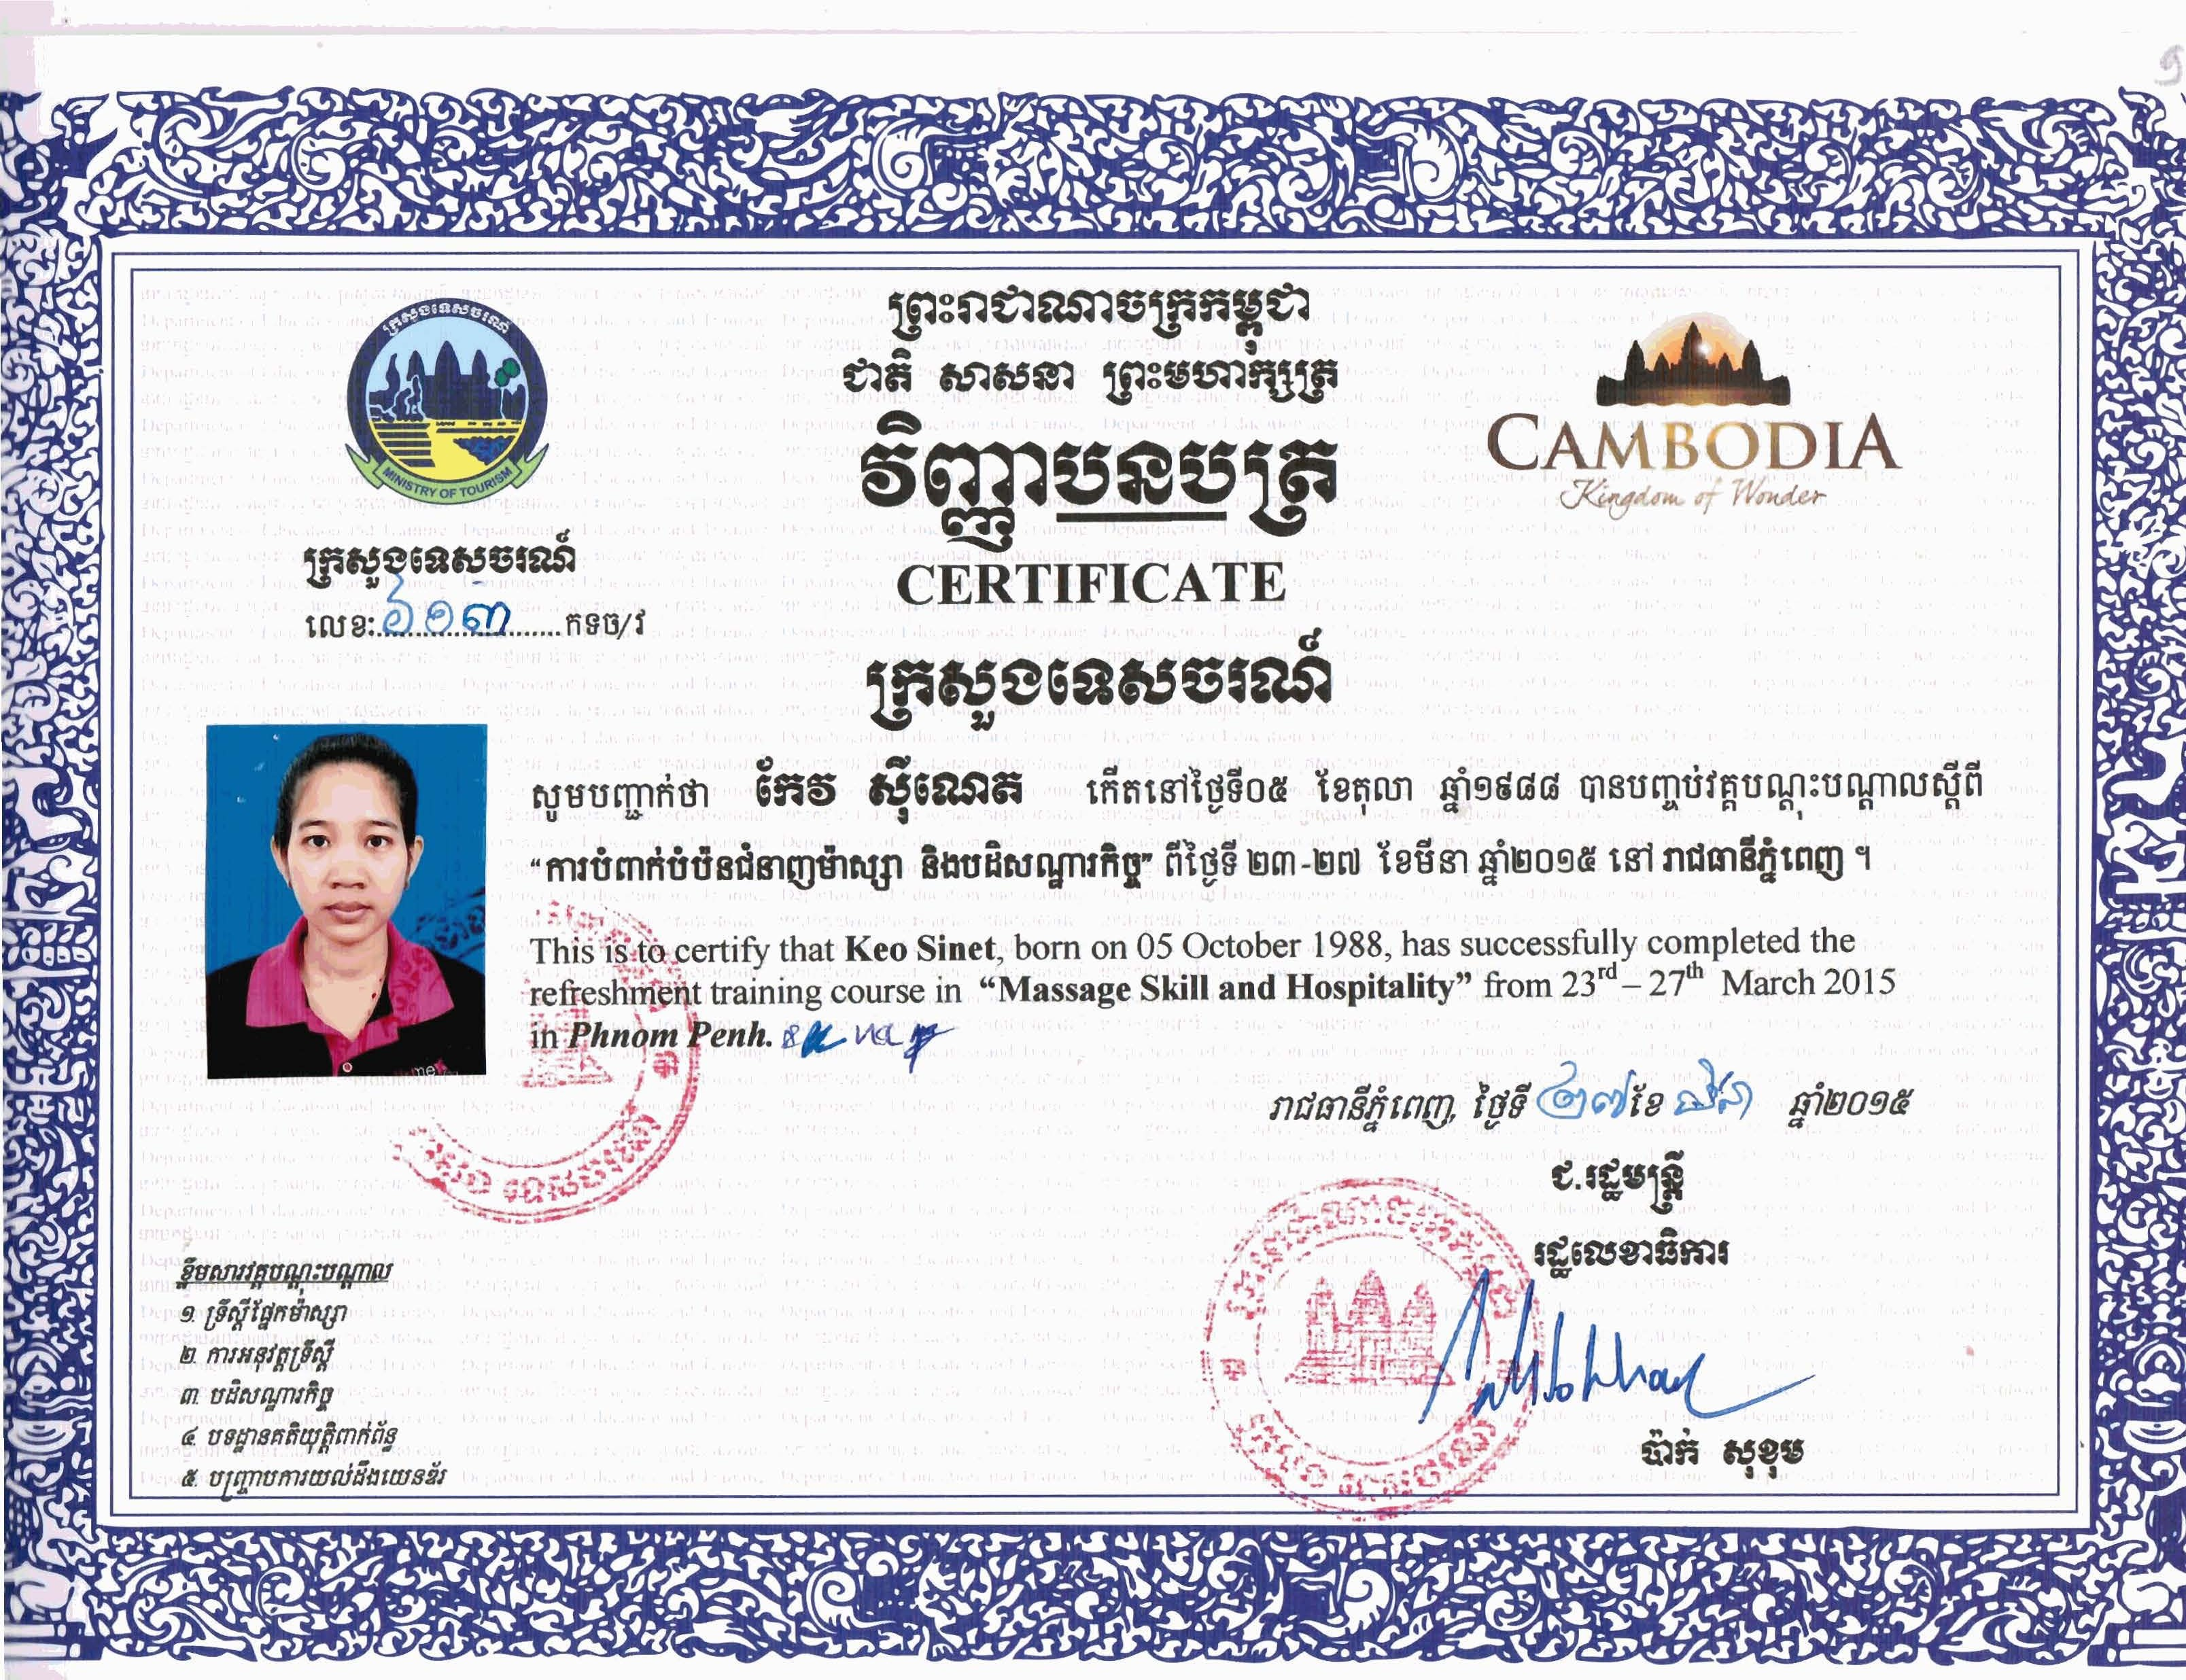 Ministry of Tourism - Certificate of Massage Skill and Hospitality- Ms. Keo Sinet